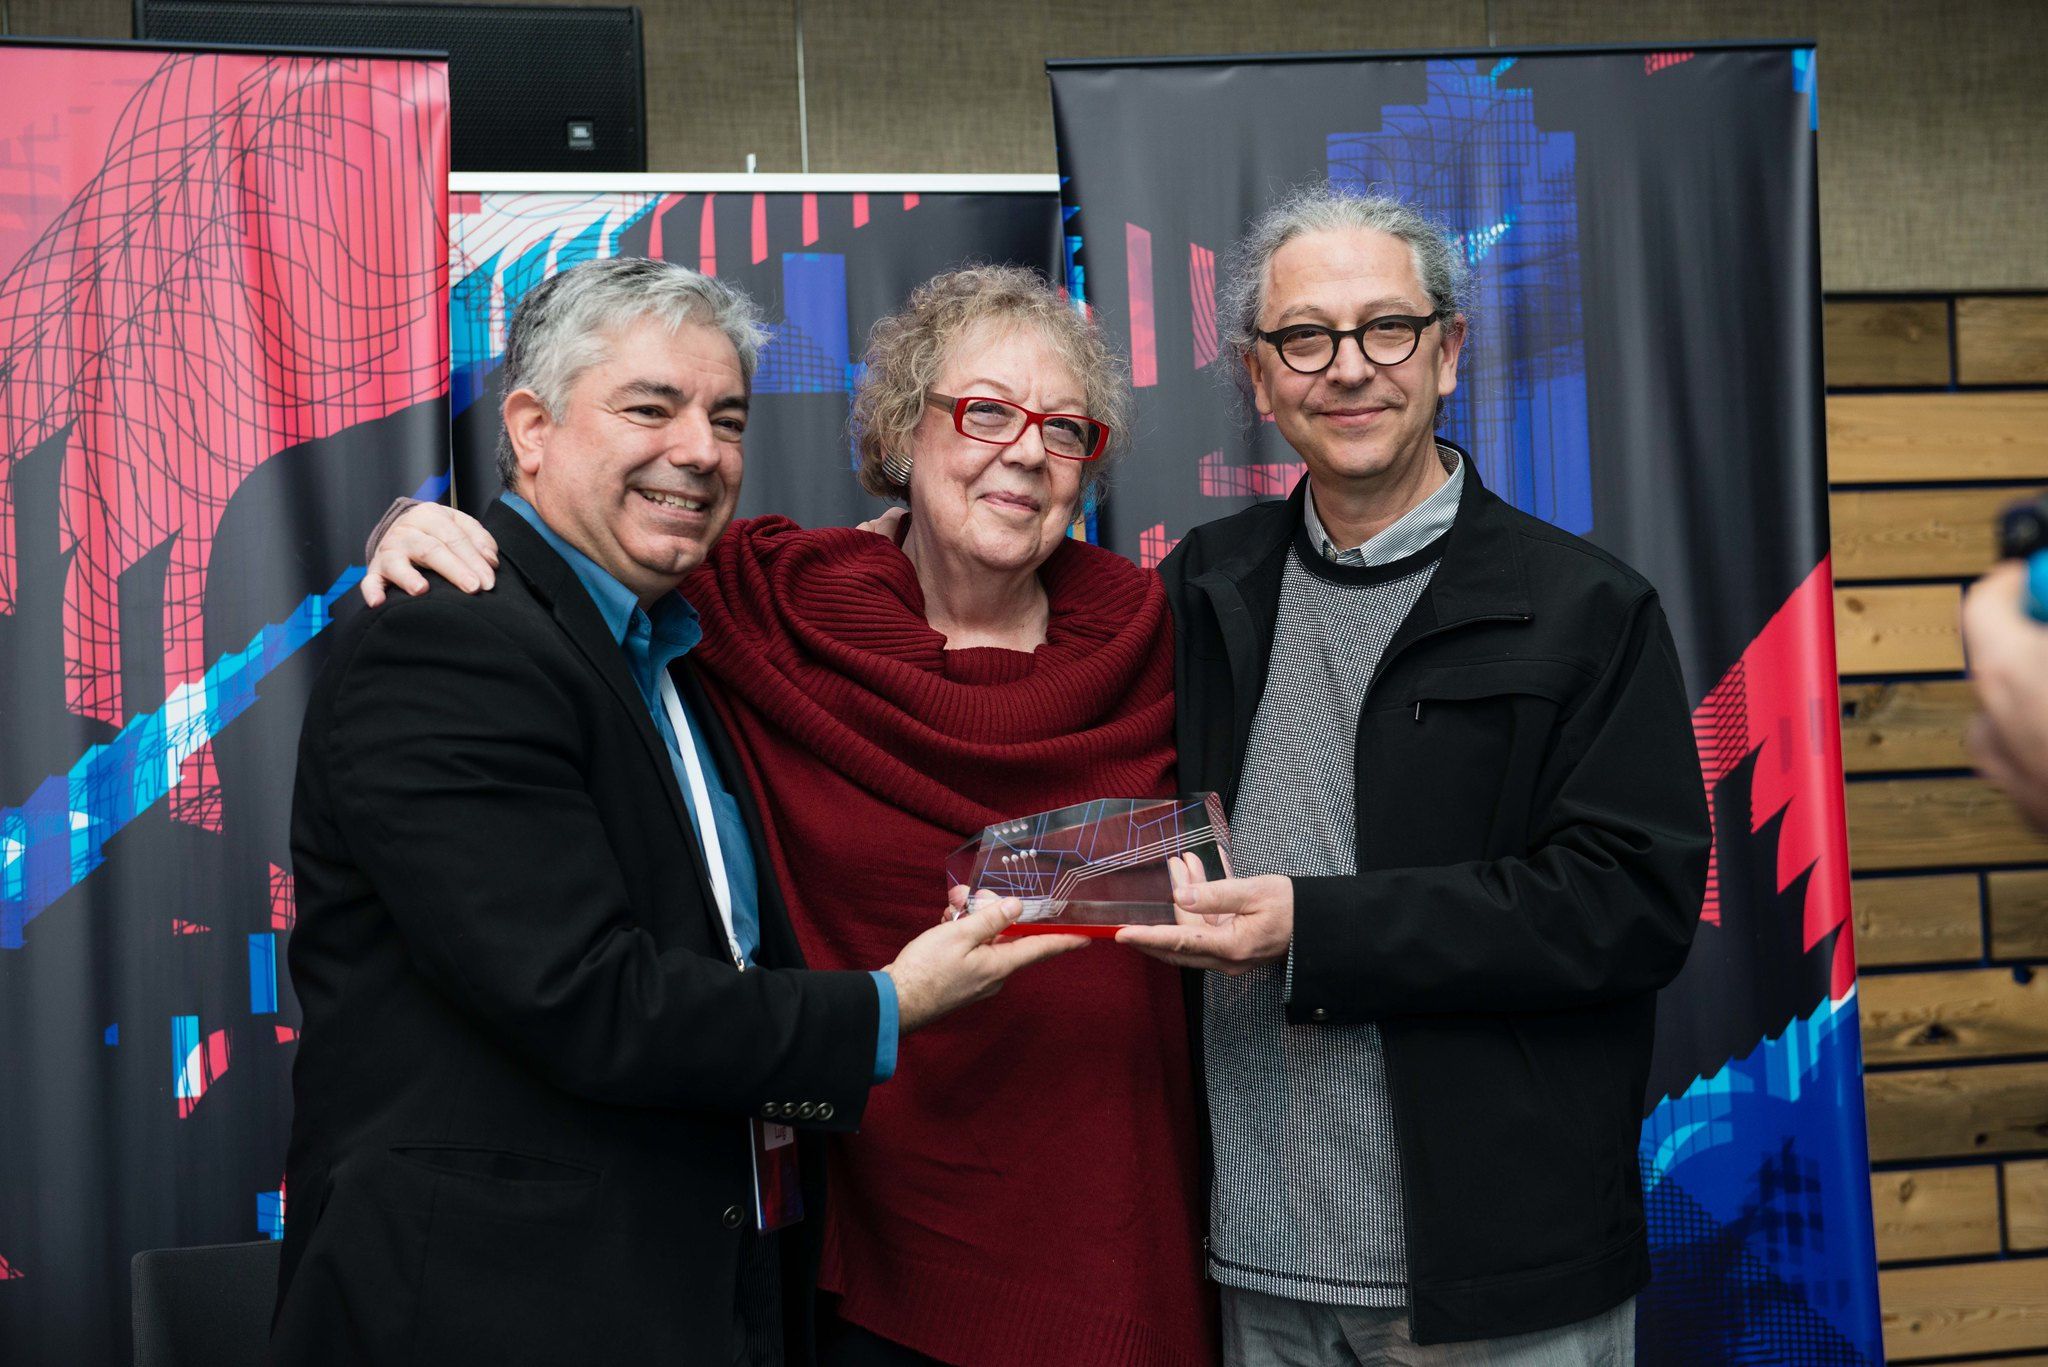 Presenting an award, three people standing together.